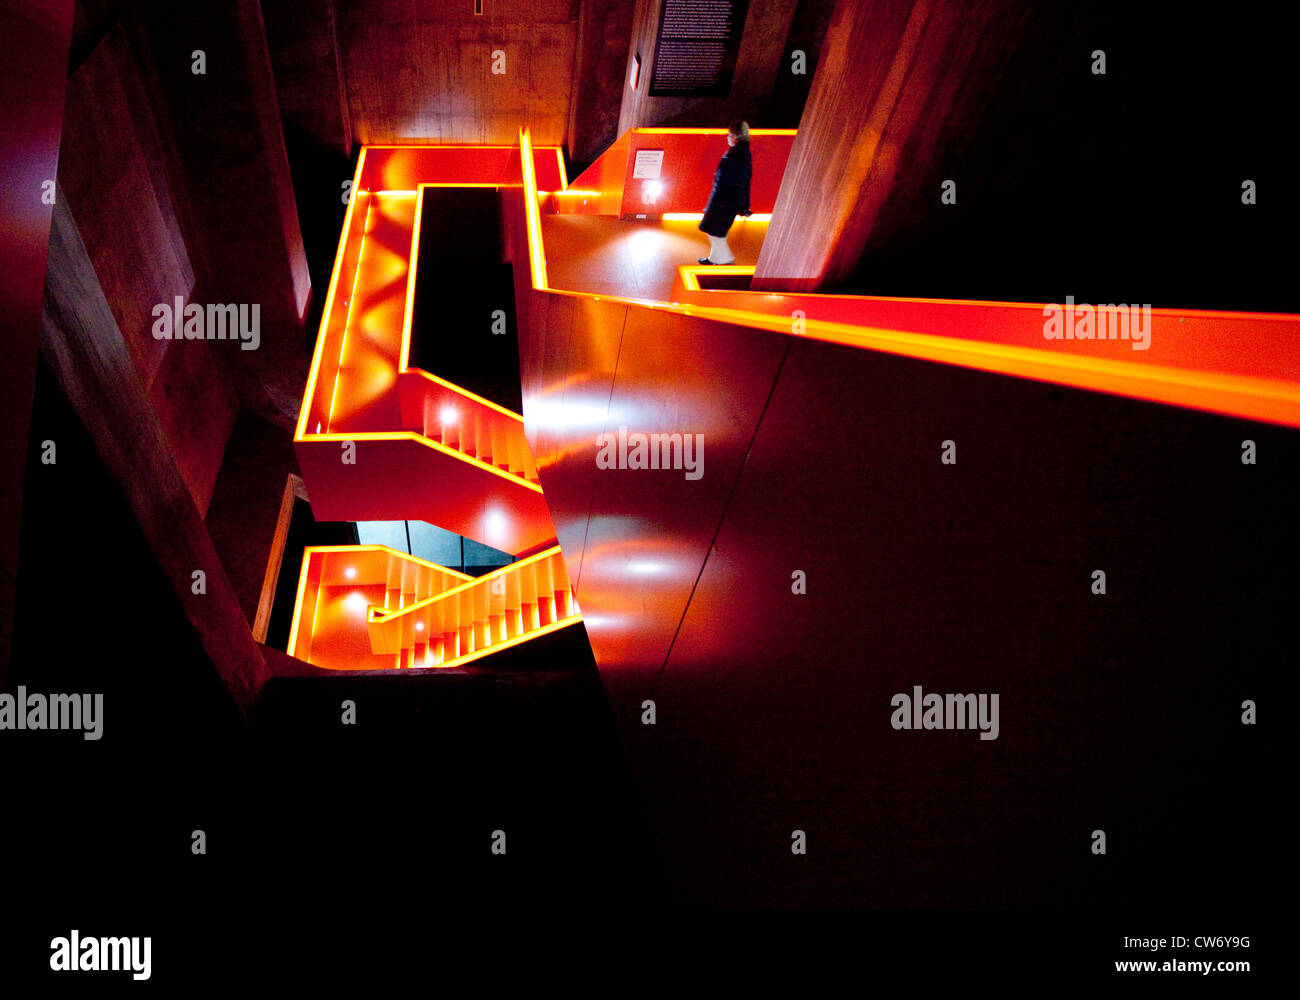 person in a staircase of coal mine Zollverein, Germany, North Rhine-Westphalia, Ruhr Area, Essen - Stock Image